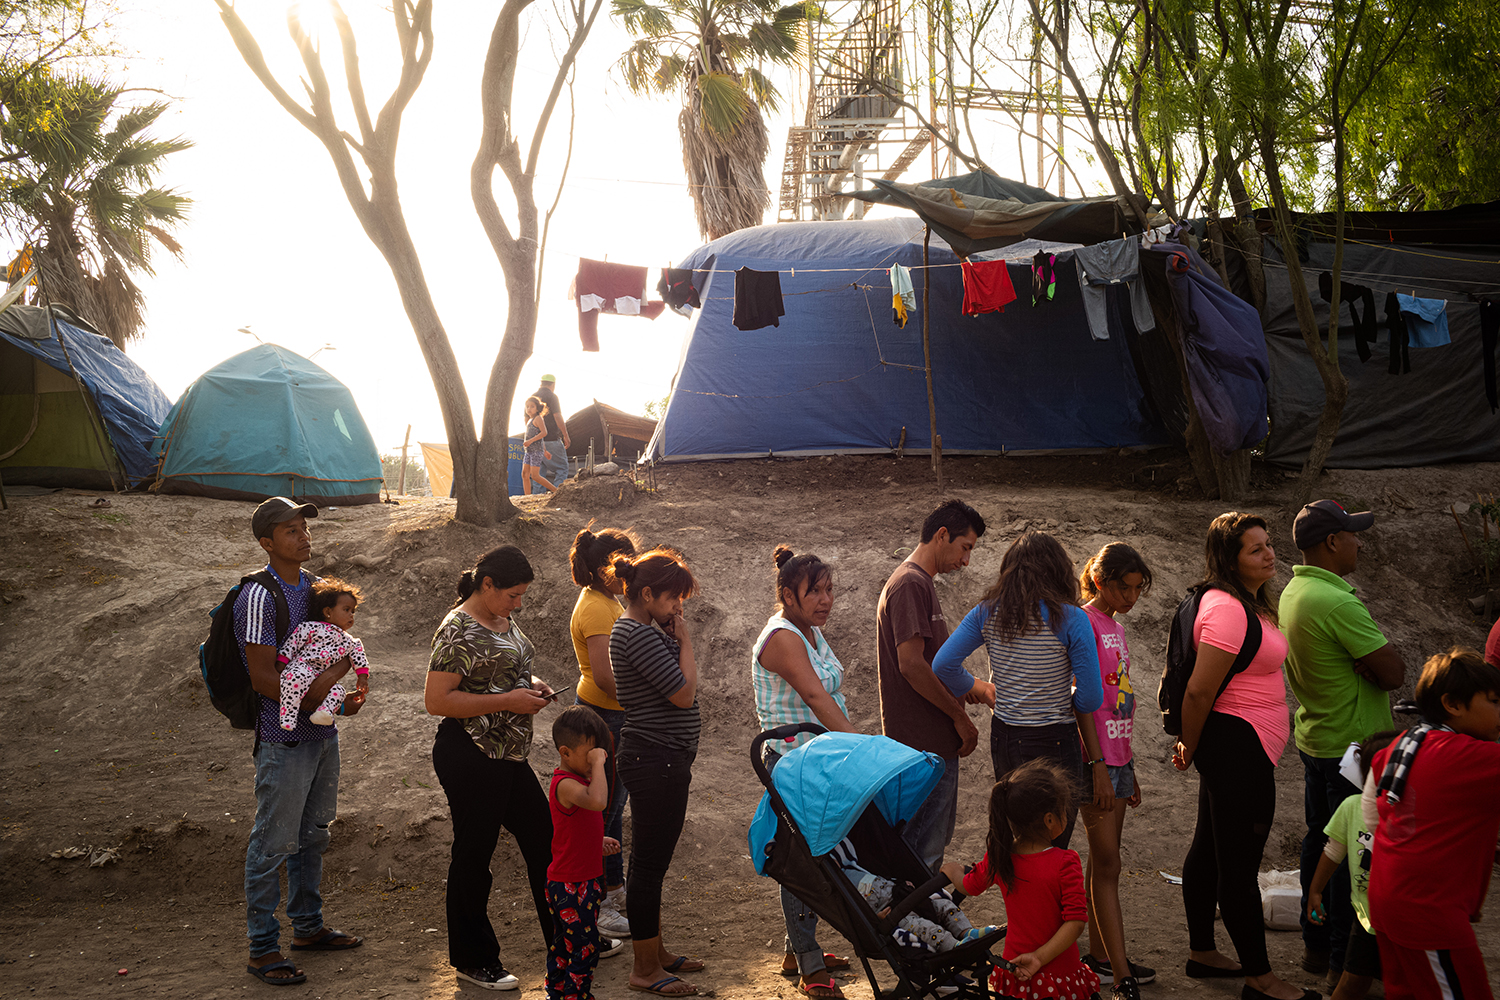 Migrants wait in line for food distribution at the Matamoros camp on March 19. Food was previously given out in a centralized tent but is now distributed at separate locations in the camp to prevent large gatherings. (Ivan Flores, March 19th, 2020) Foreign Policy.